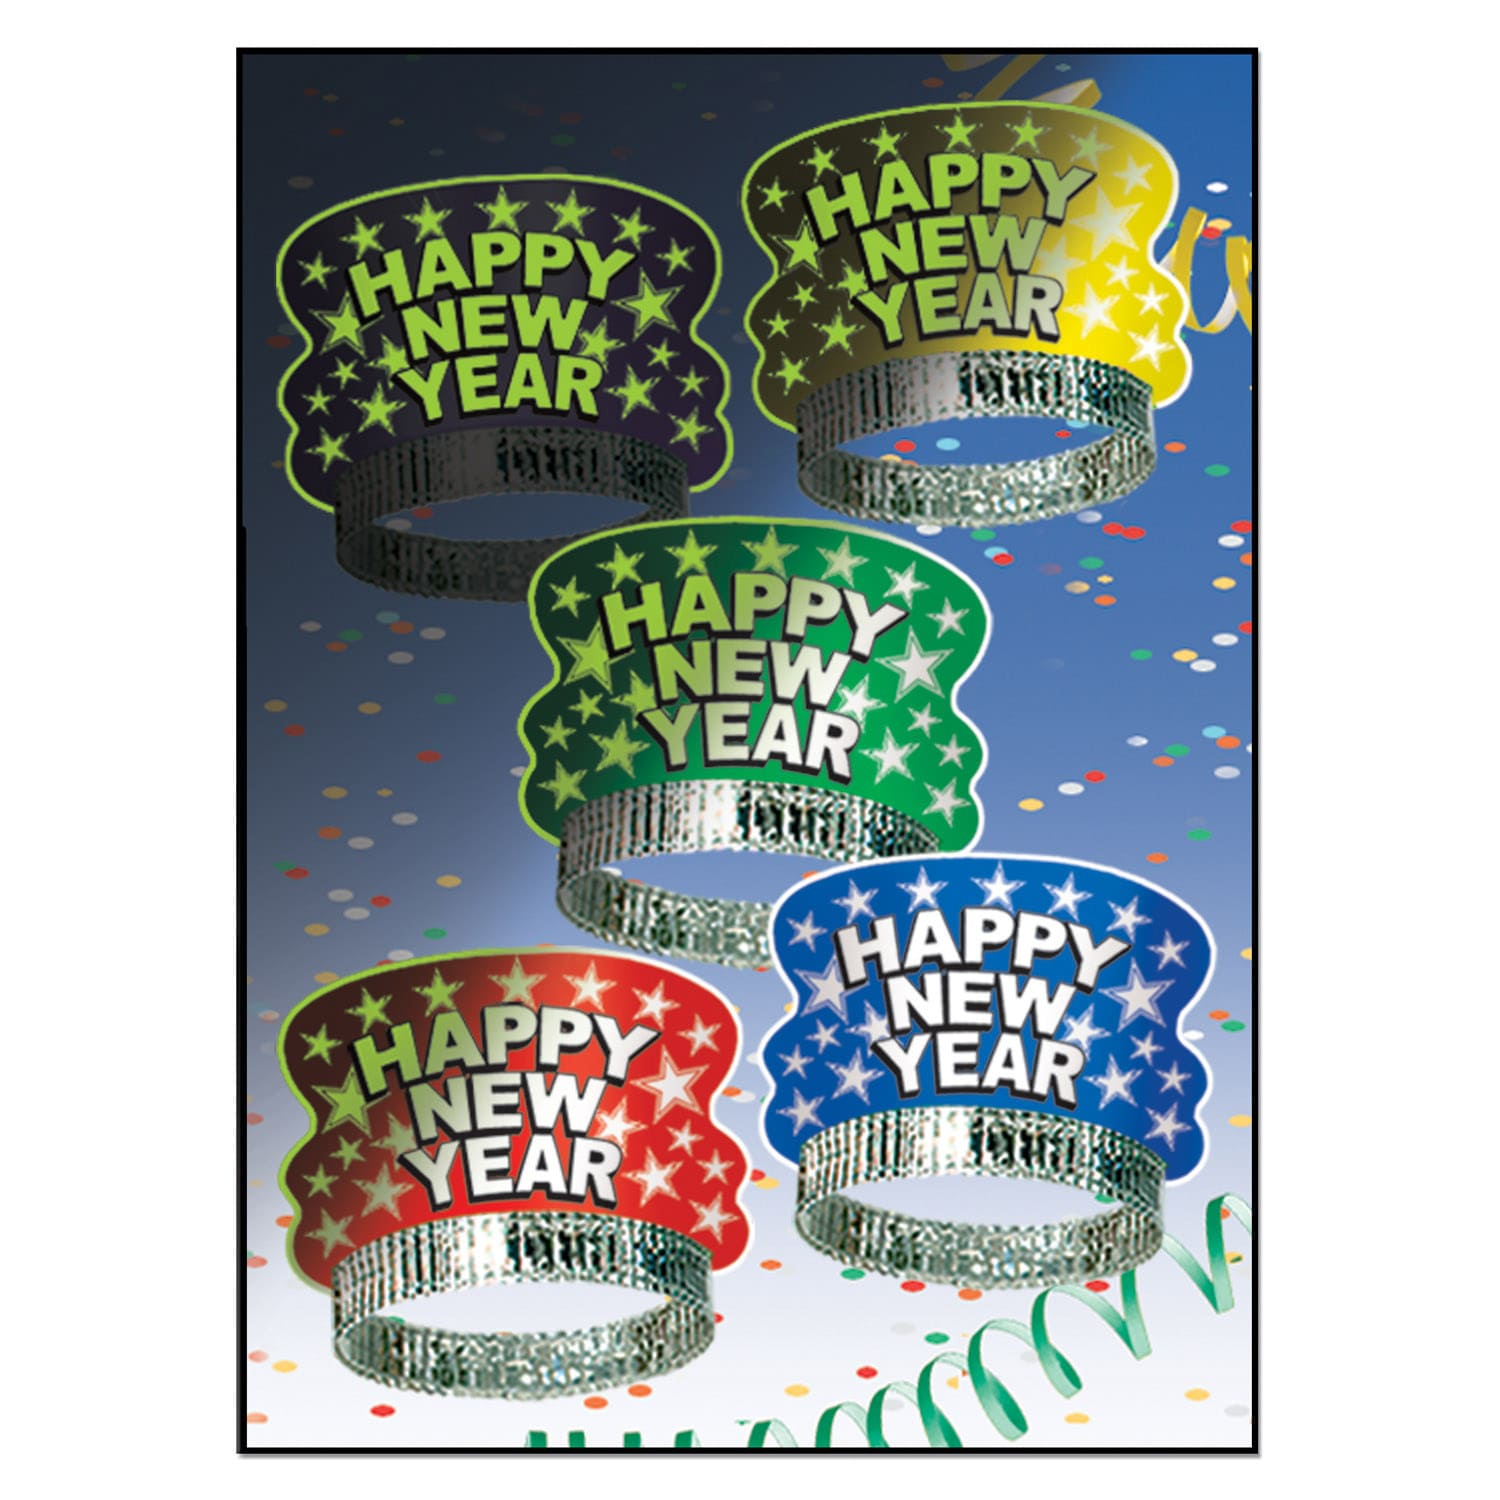 Midnight Glow Tiaras (Pack of 50) midnight, glow, tiaras, happy, new, year, eve, accessory, decoration, party, in, the, dark, hotel, restaurant, bar, casino, country club